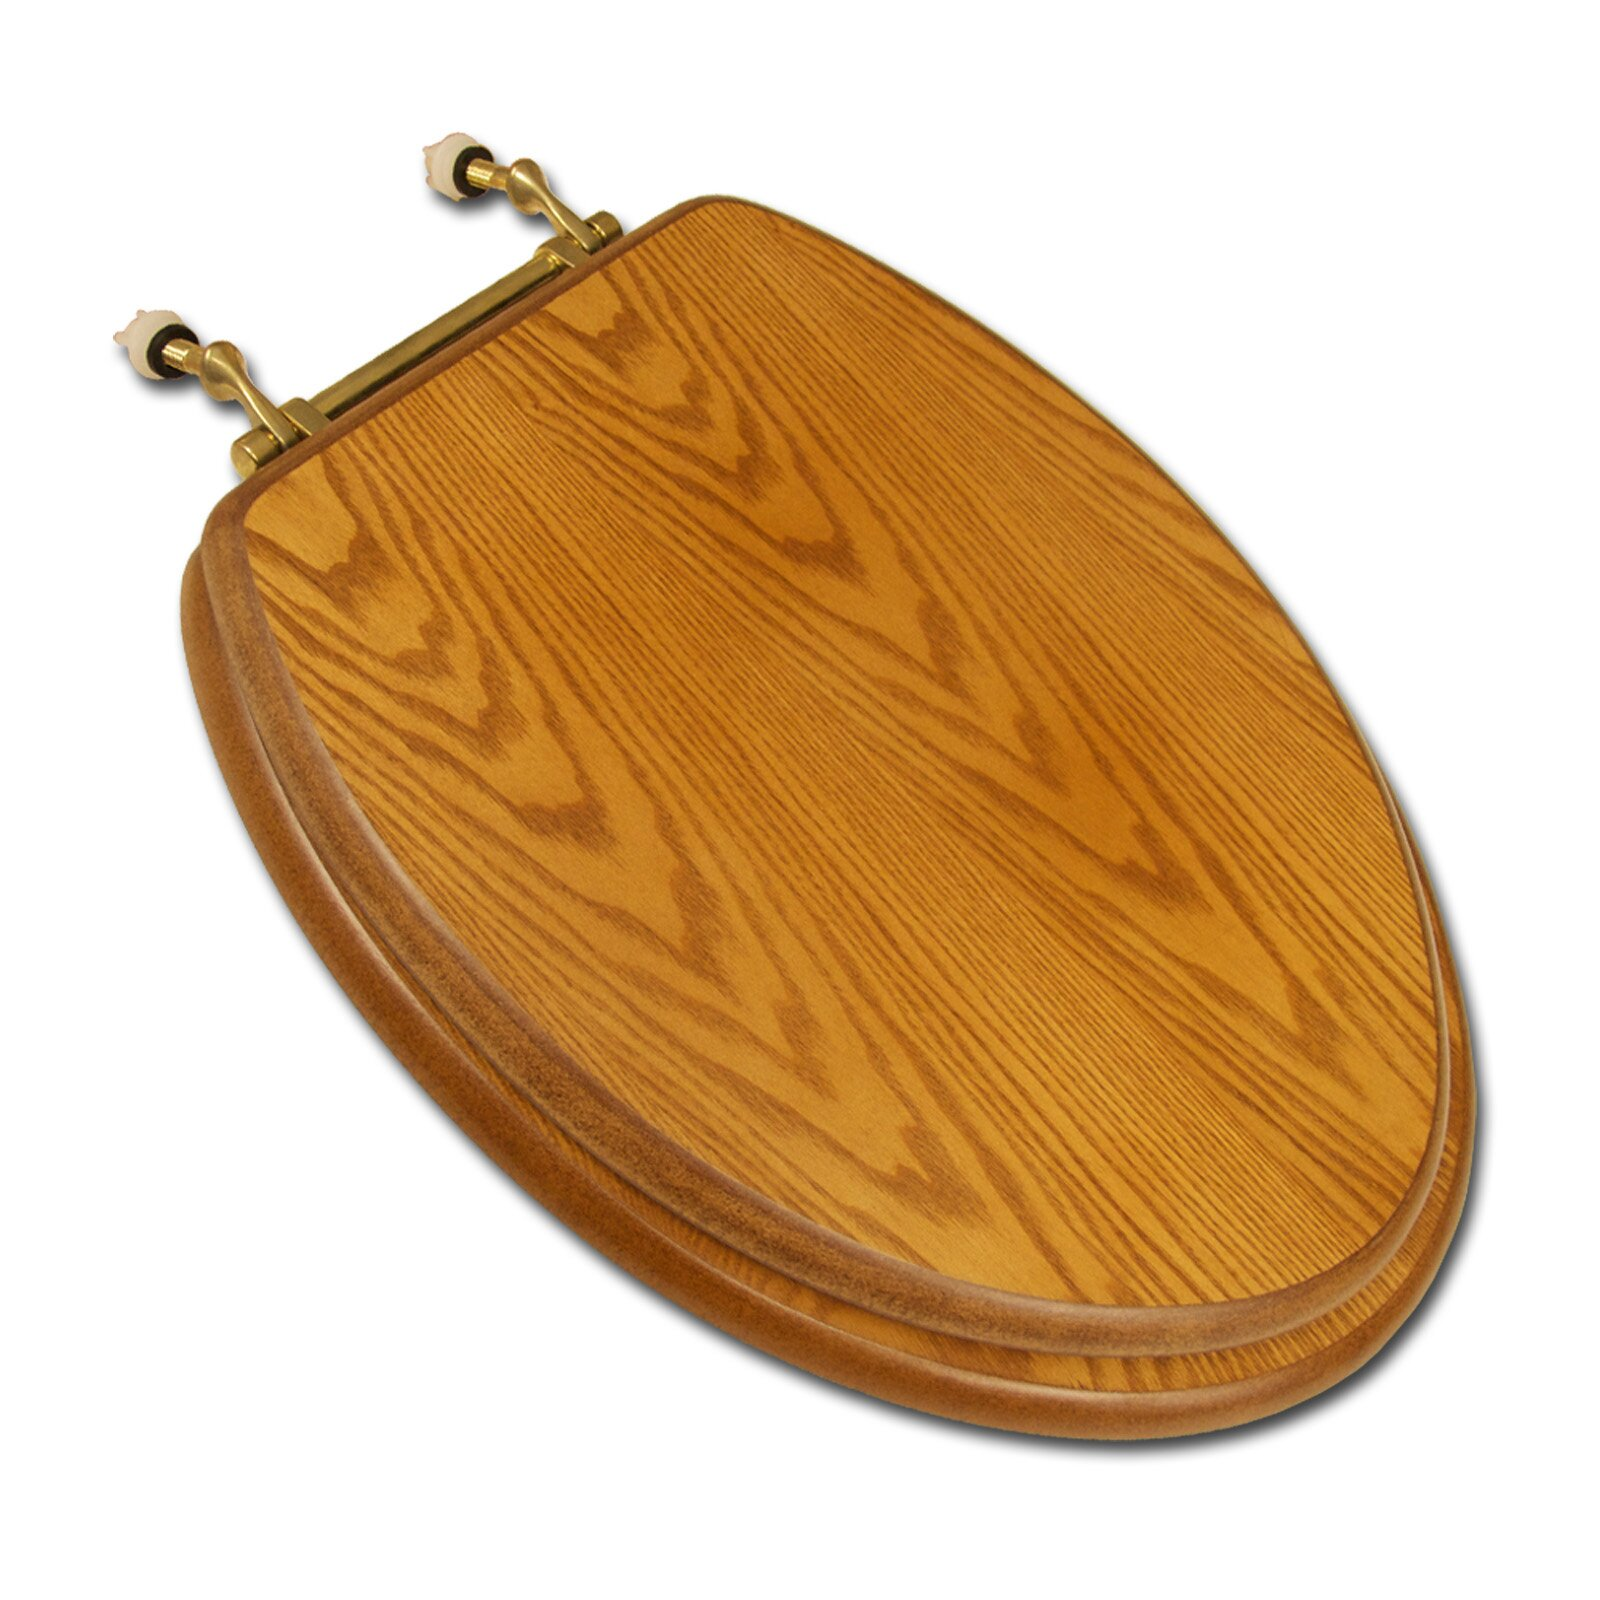 Comfort Seats Decorative Wood Elongated Toilet Seat  Reviews - Oak toilet seat soft close